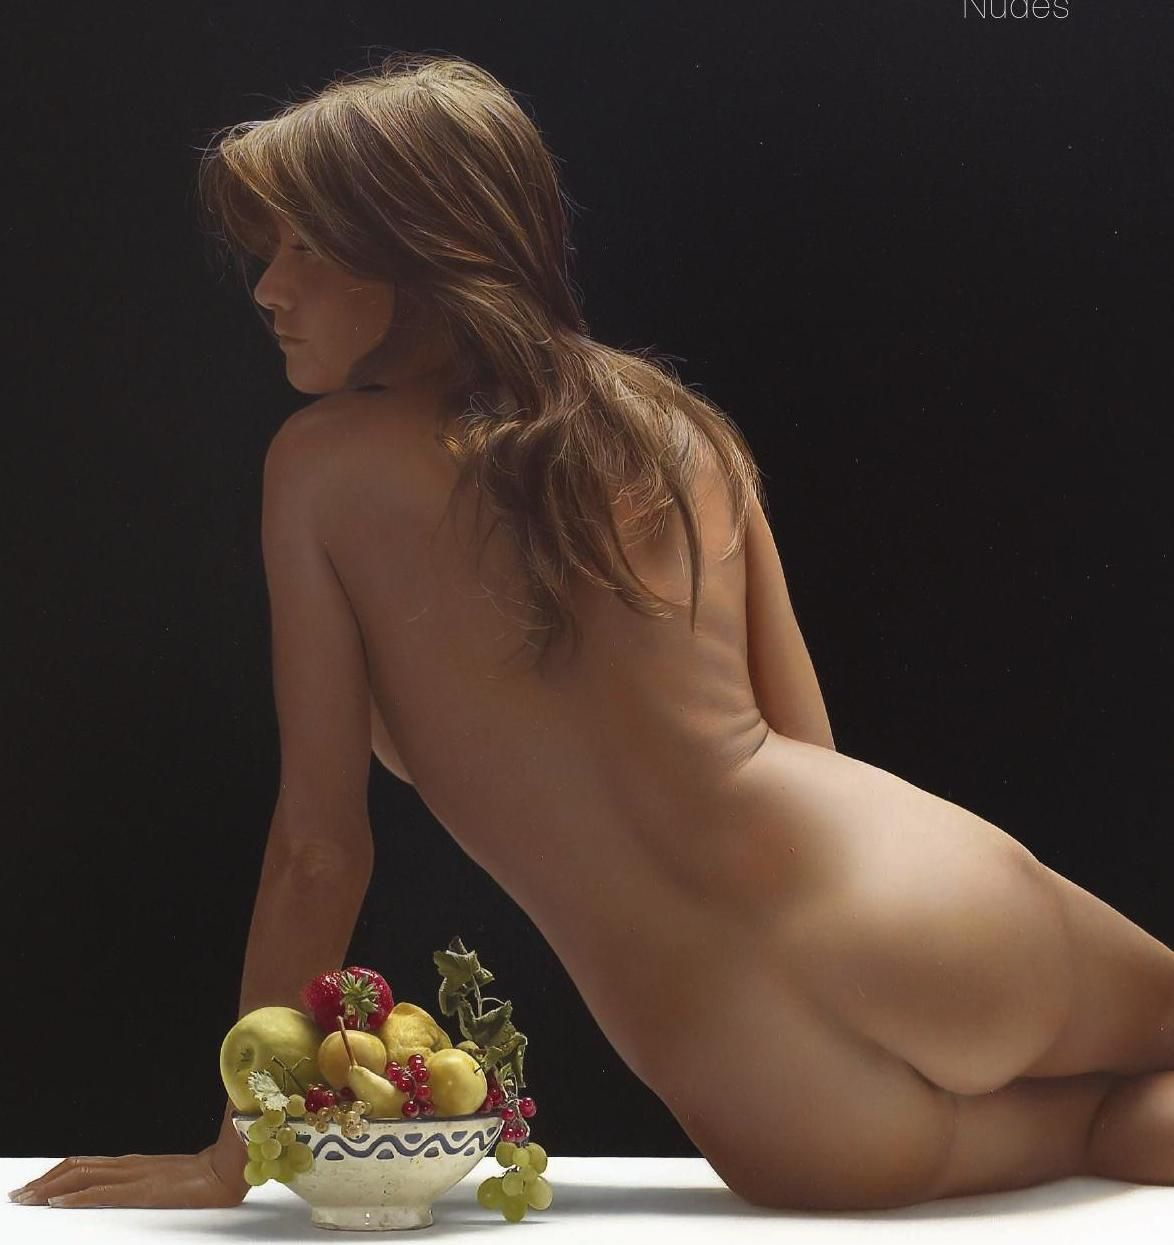 ISSUU - Luciano Ventrone - Nudes by Albemarle Gallery